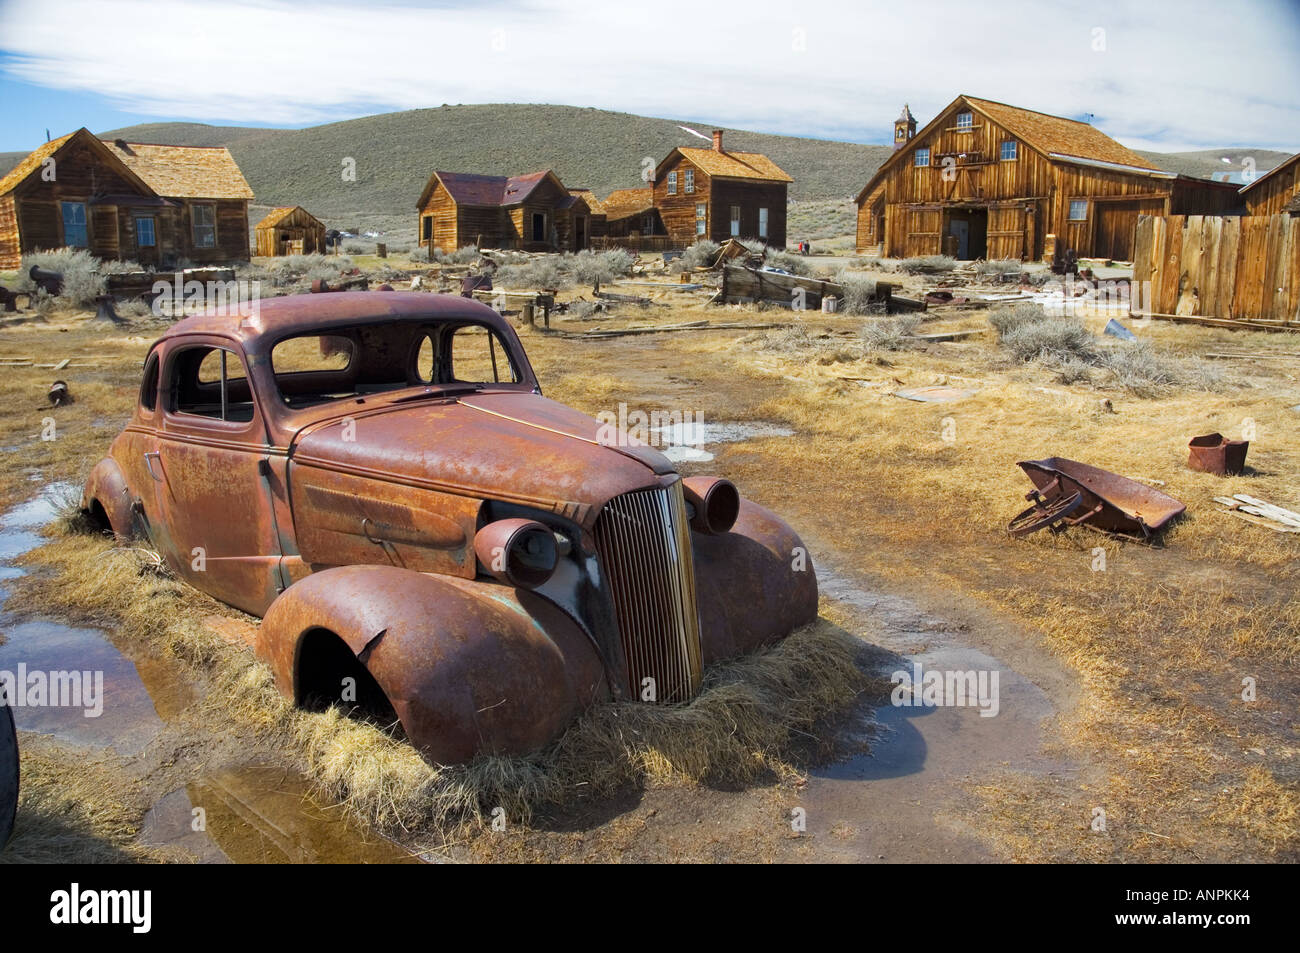 Rusty car in Bodie state historic park, California - Stock Image